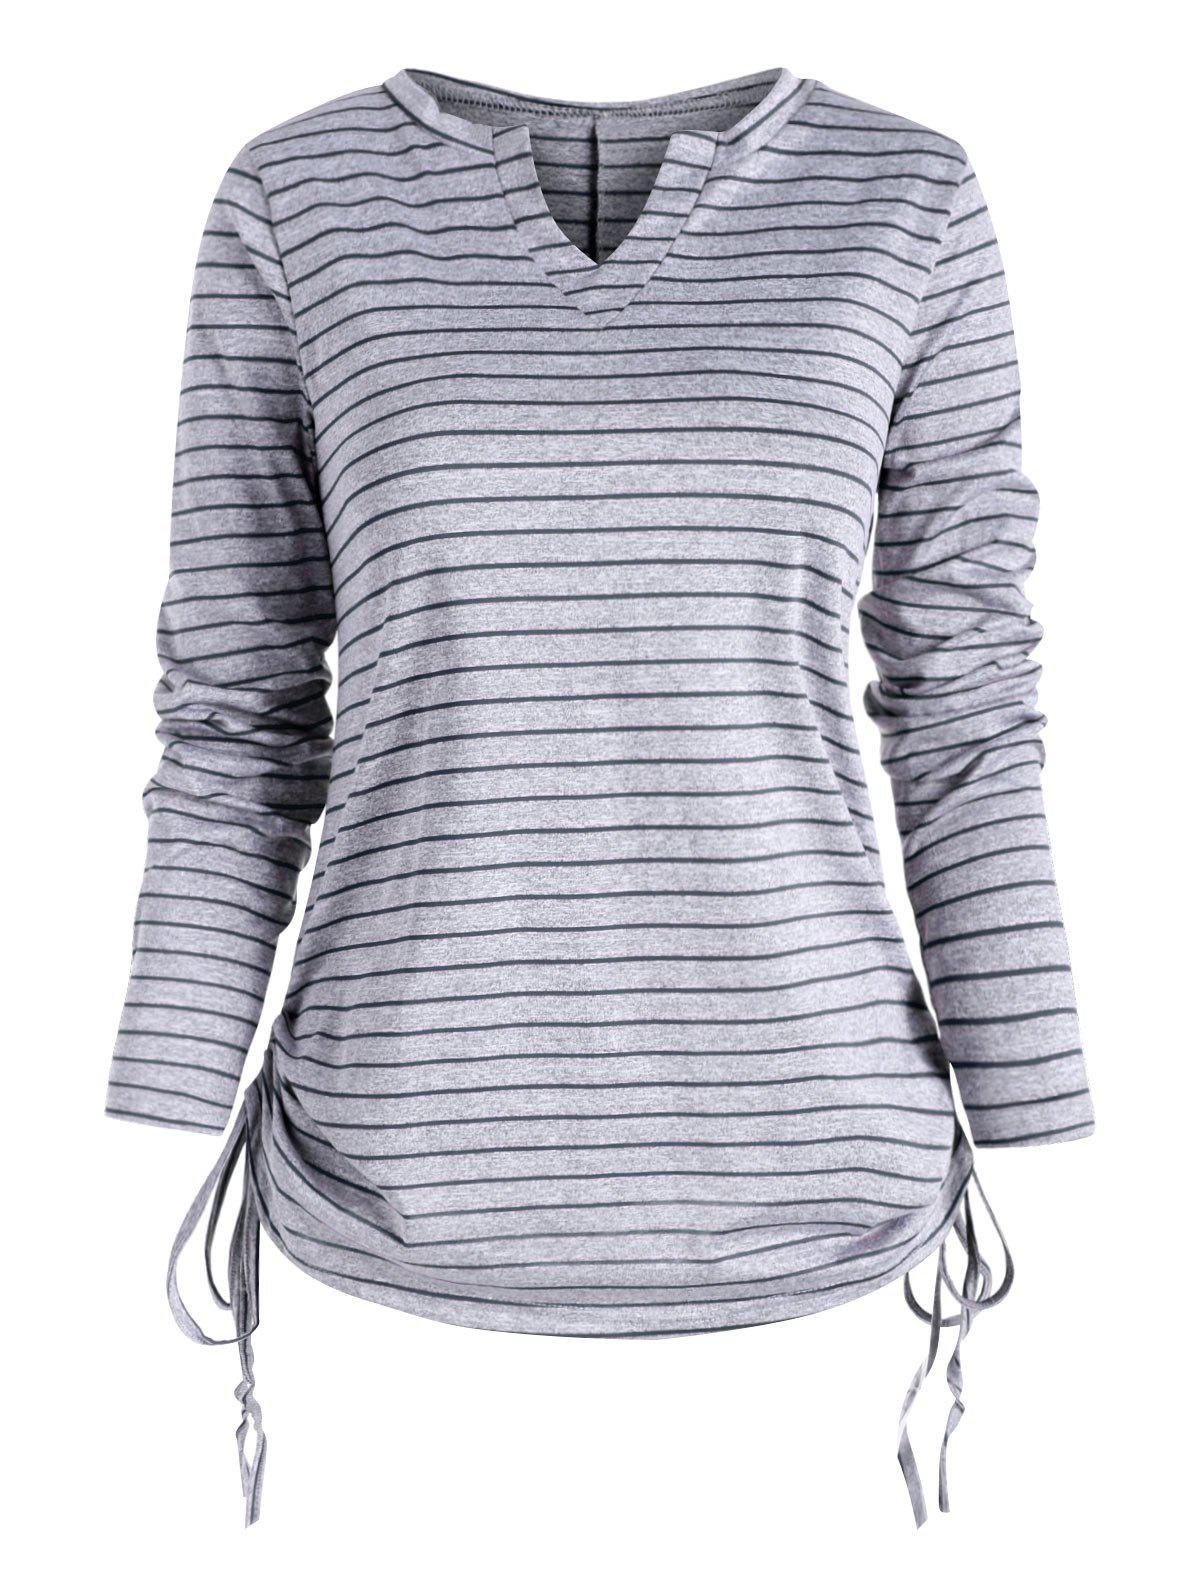 Best Heather Striped V Neck Cinched T-shirt